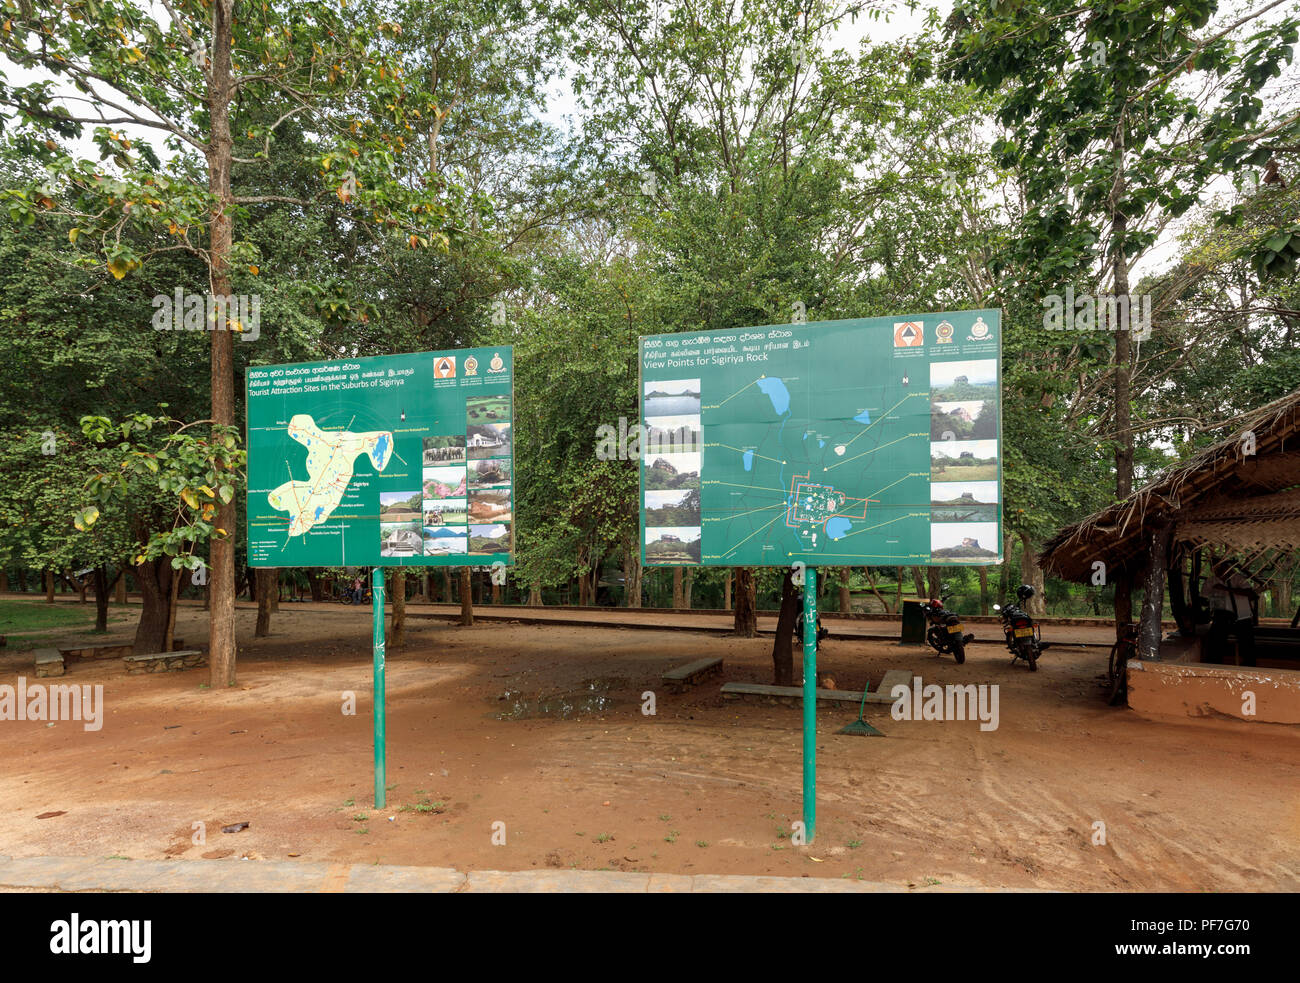 Signs listing points of interest at Sigiriya or Lion Rock in the Cultural Triangle of Sri Lanka, a leading historic monument tourist attraction - Stock Image